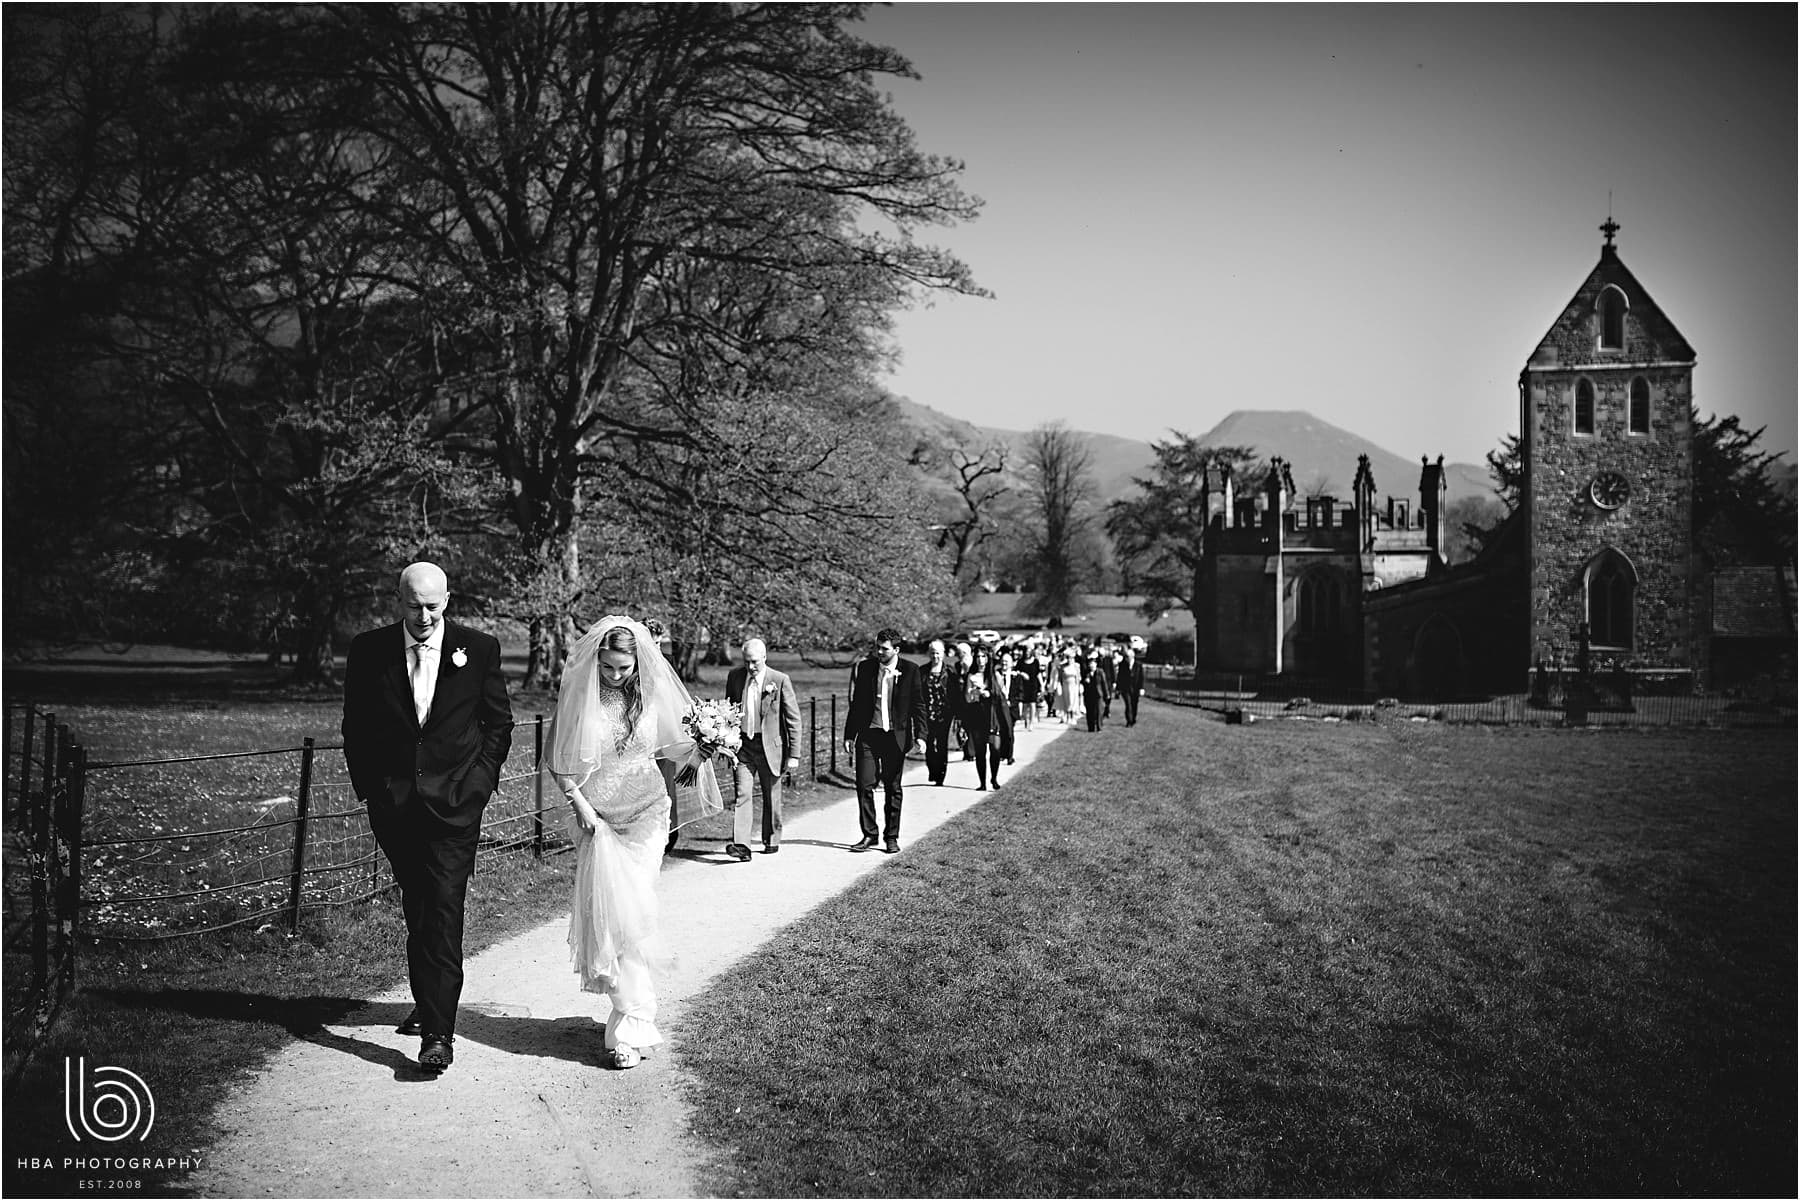 the bride and groom walking to Ilam Hall